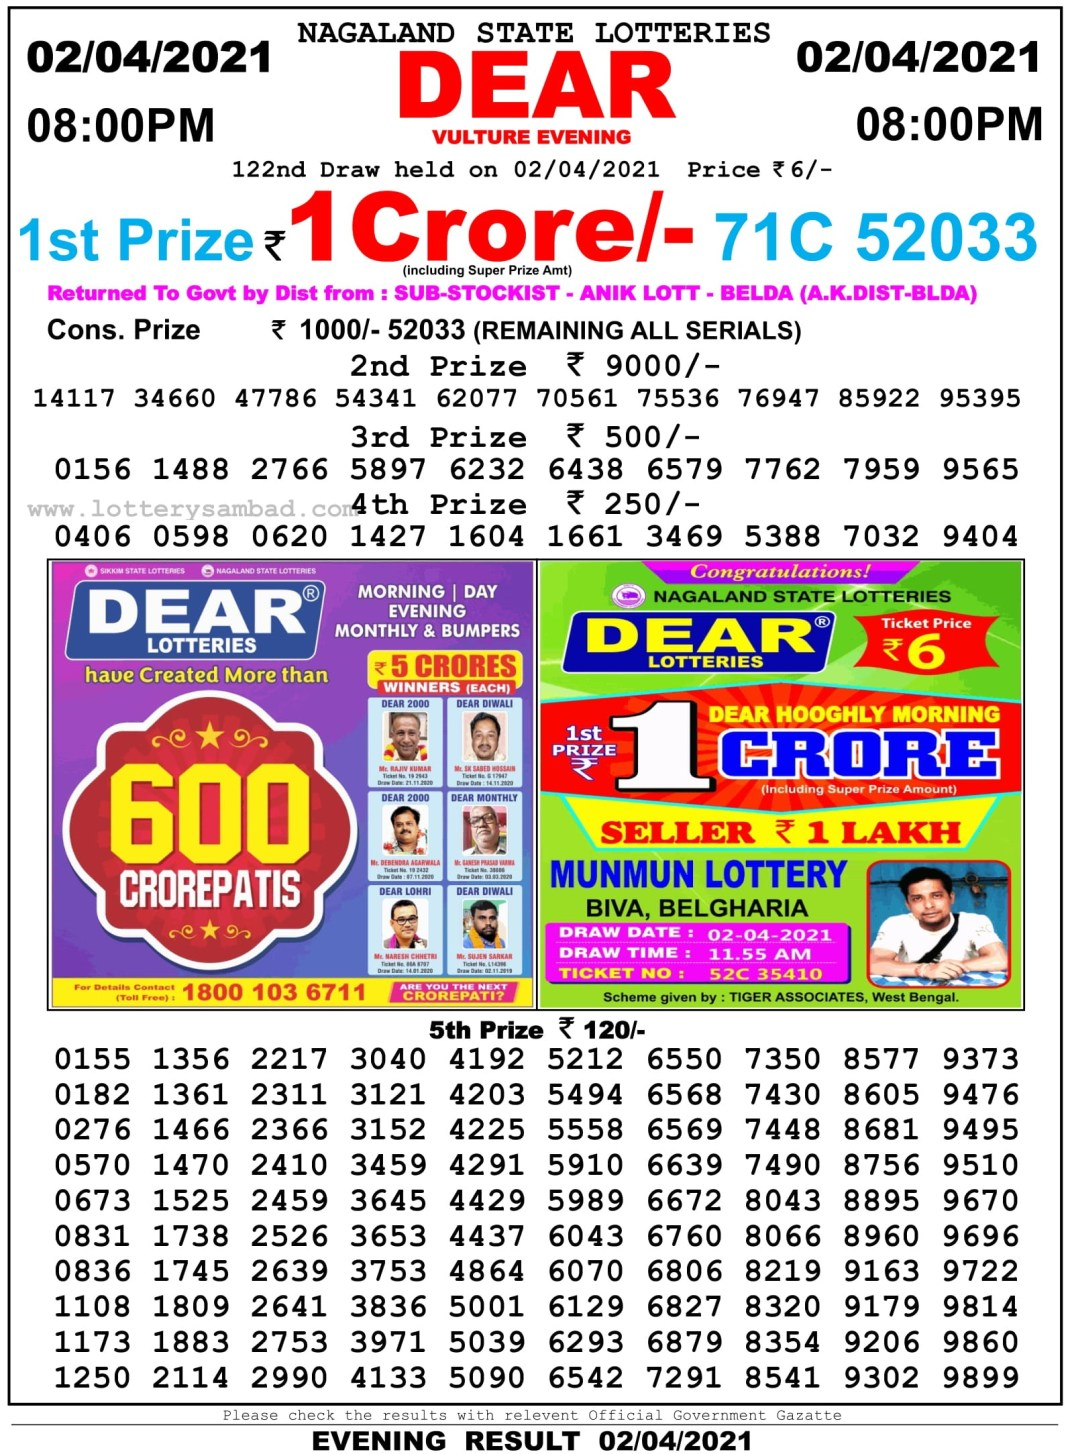 Nagaland State Lottery Result 8 PM 2.4.2021